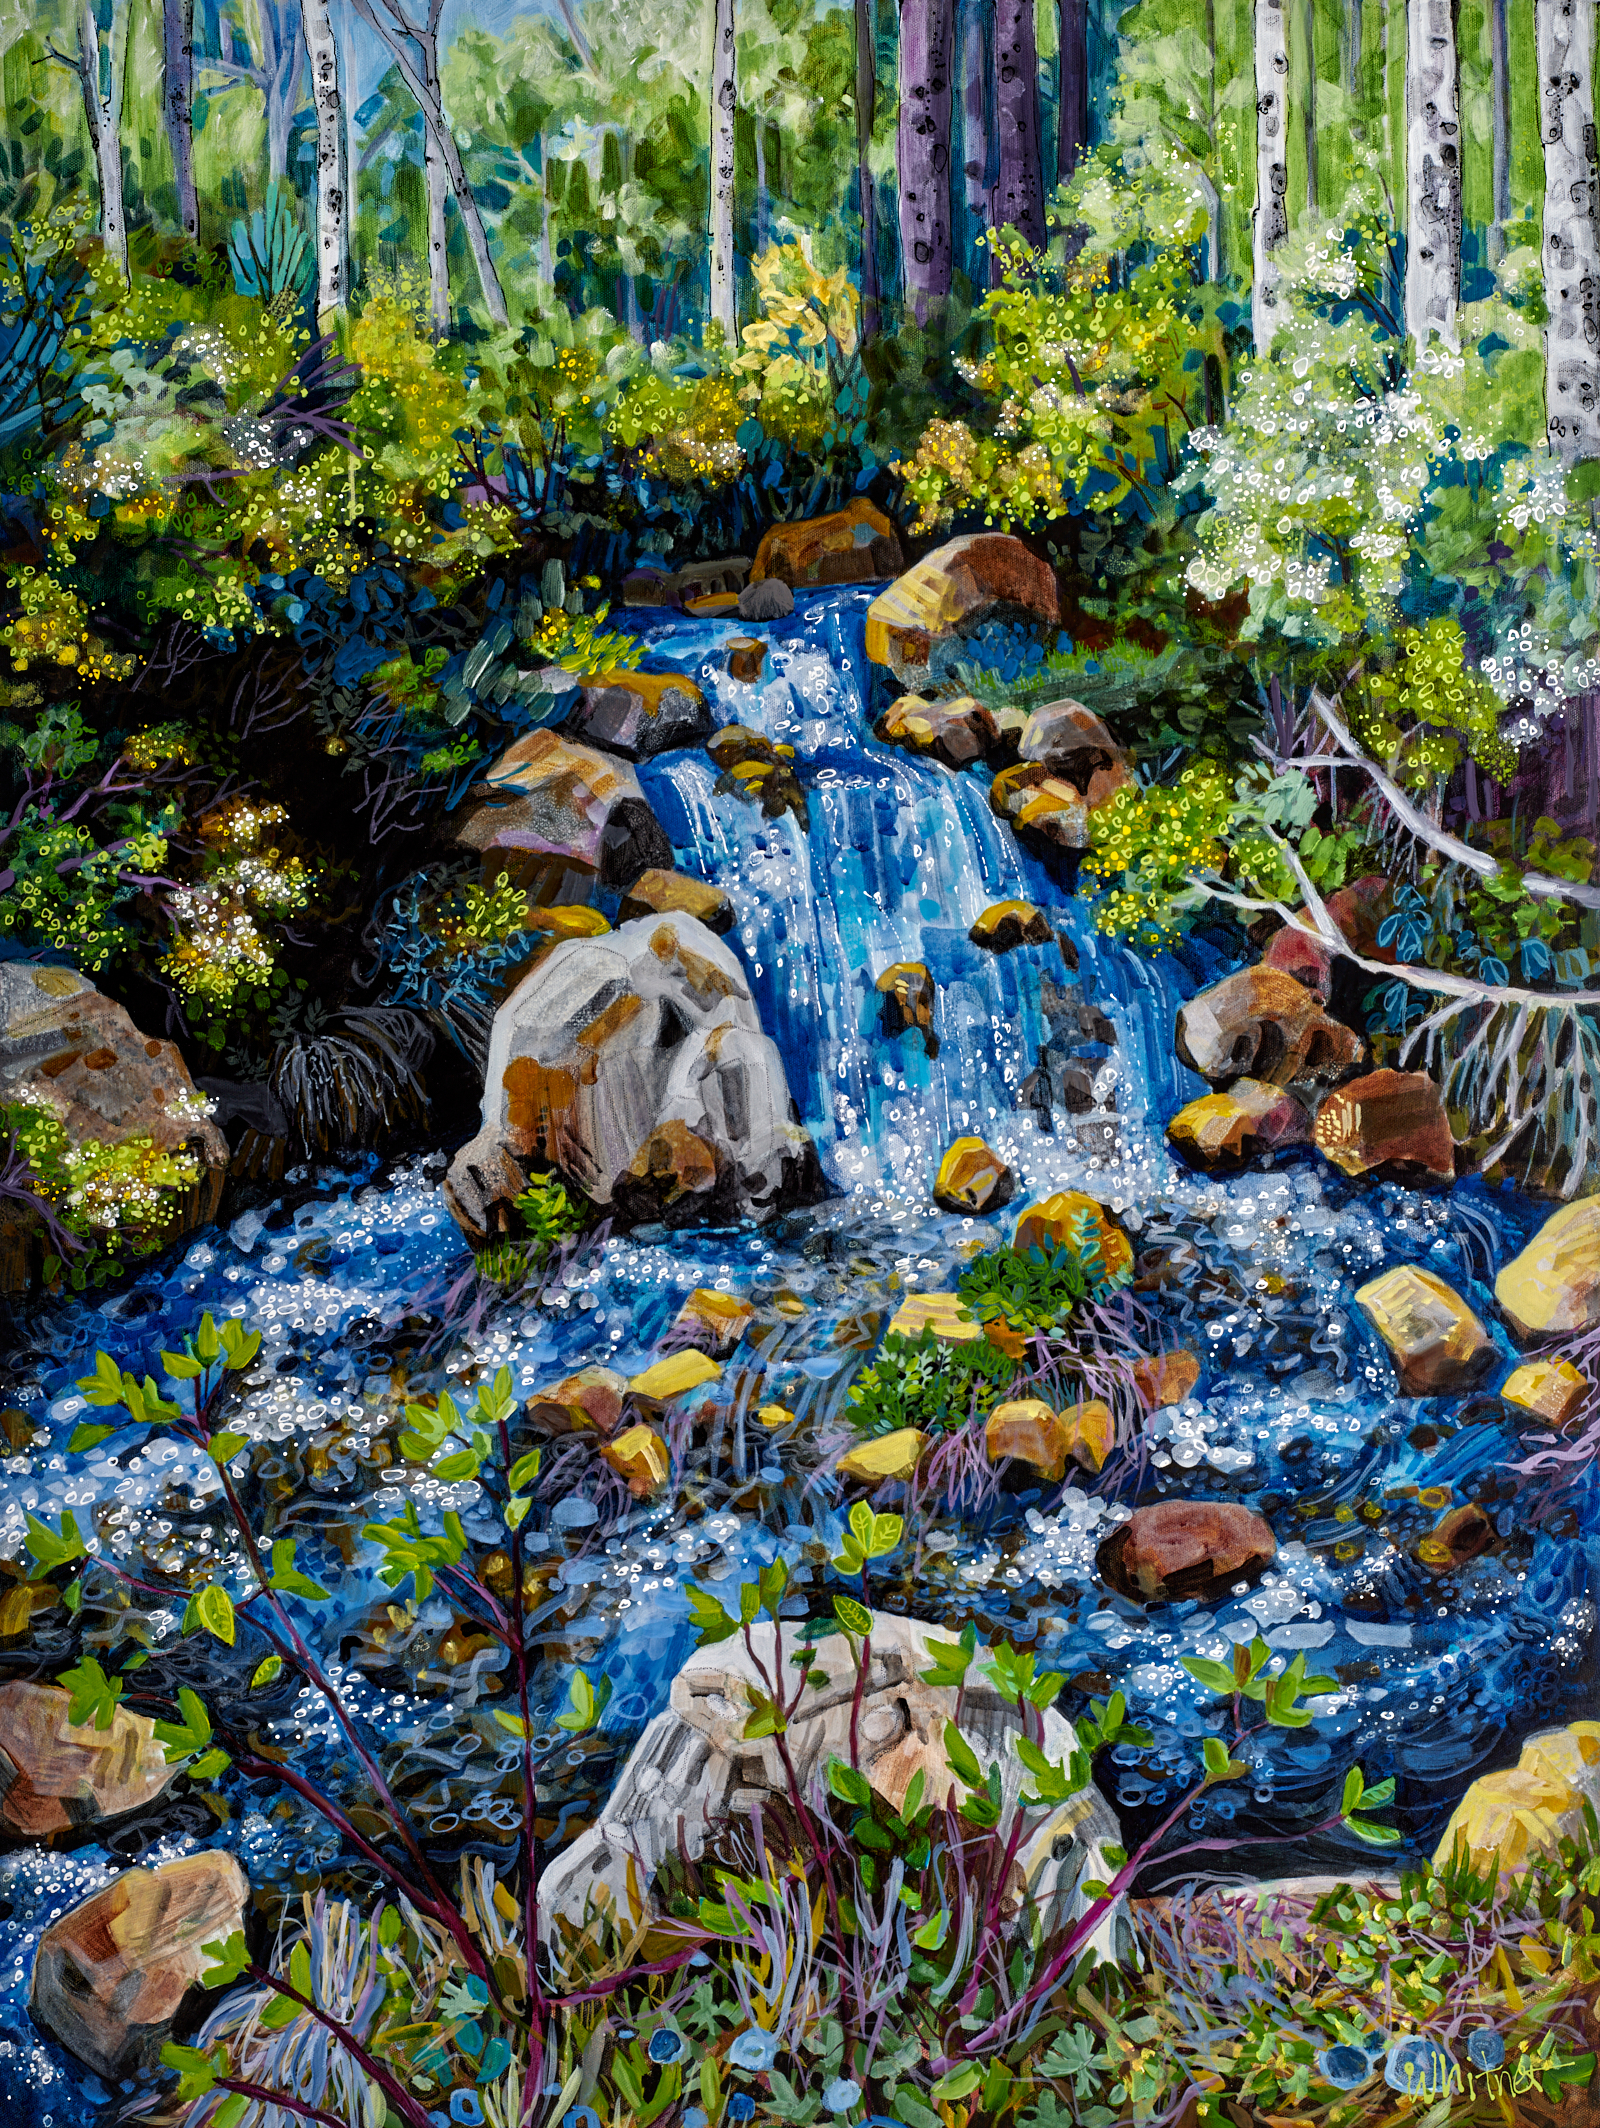 Lancescape painting titled Spring Creek by Lance Whitner in Steamboat Springs Colorado